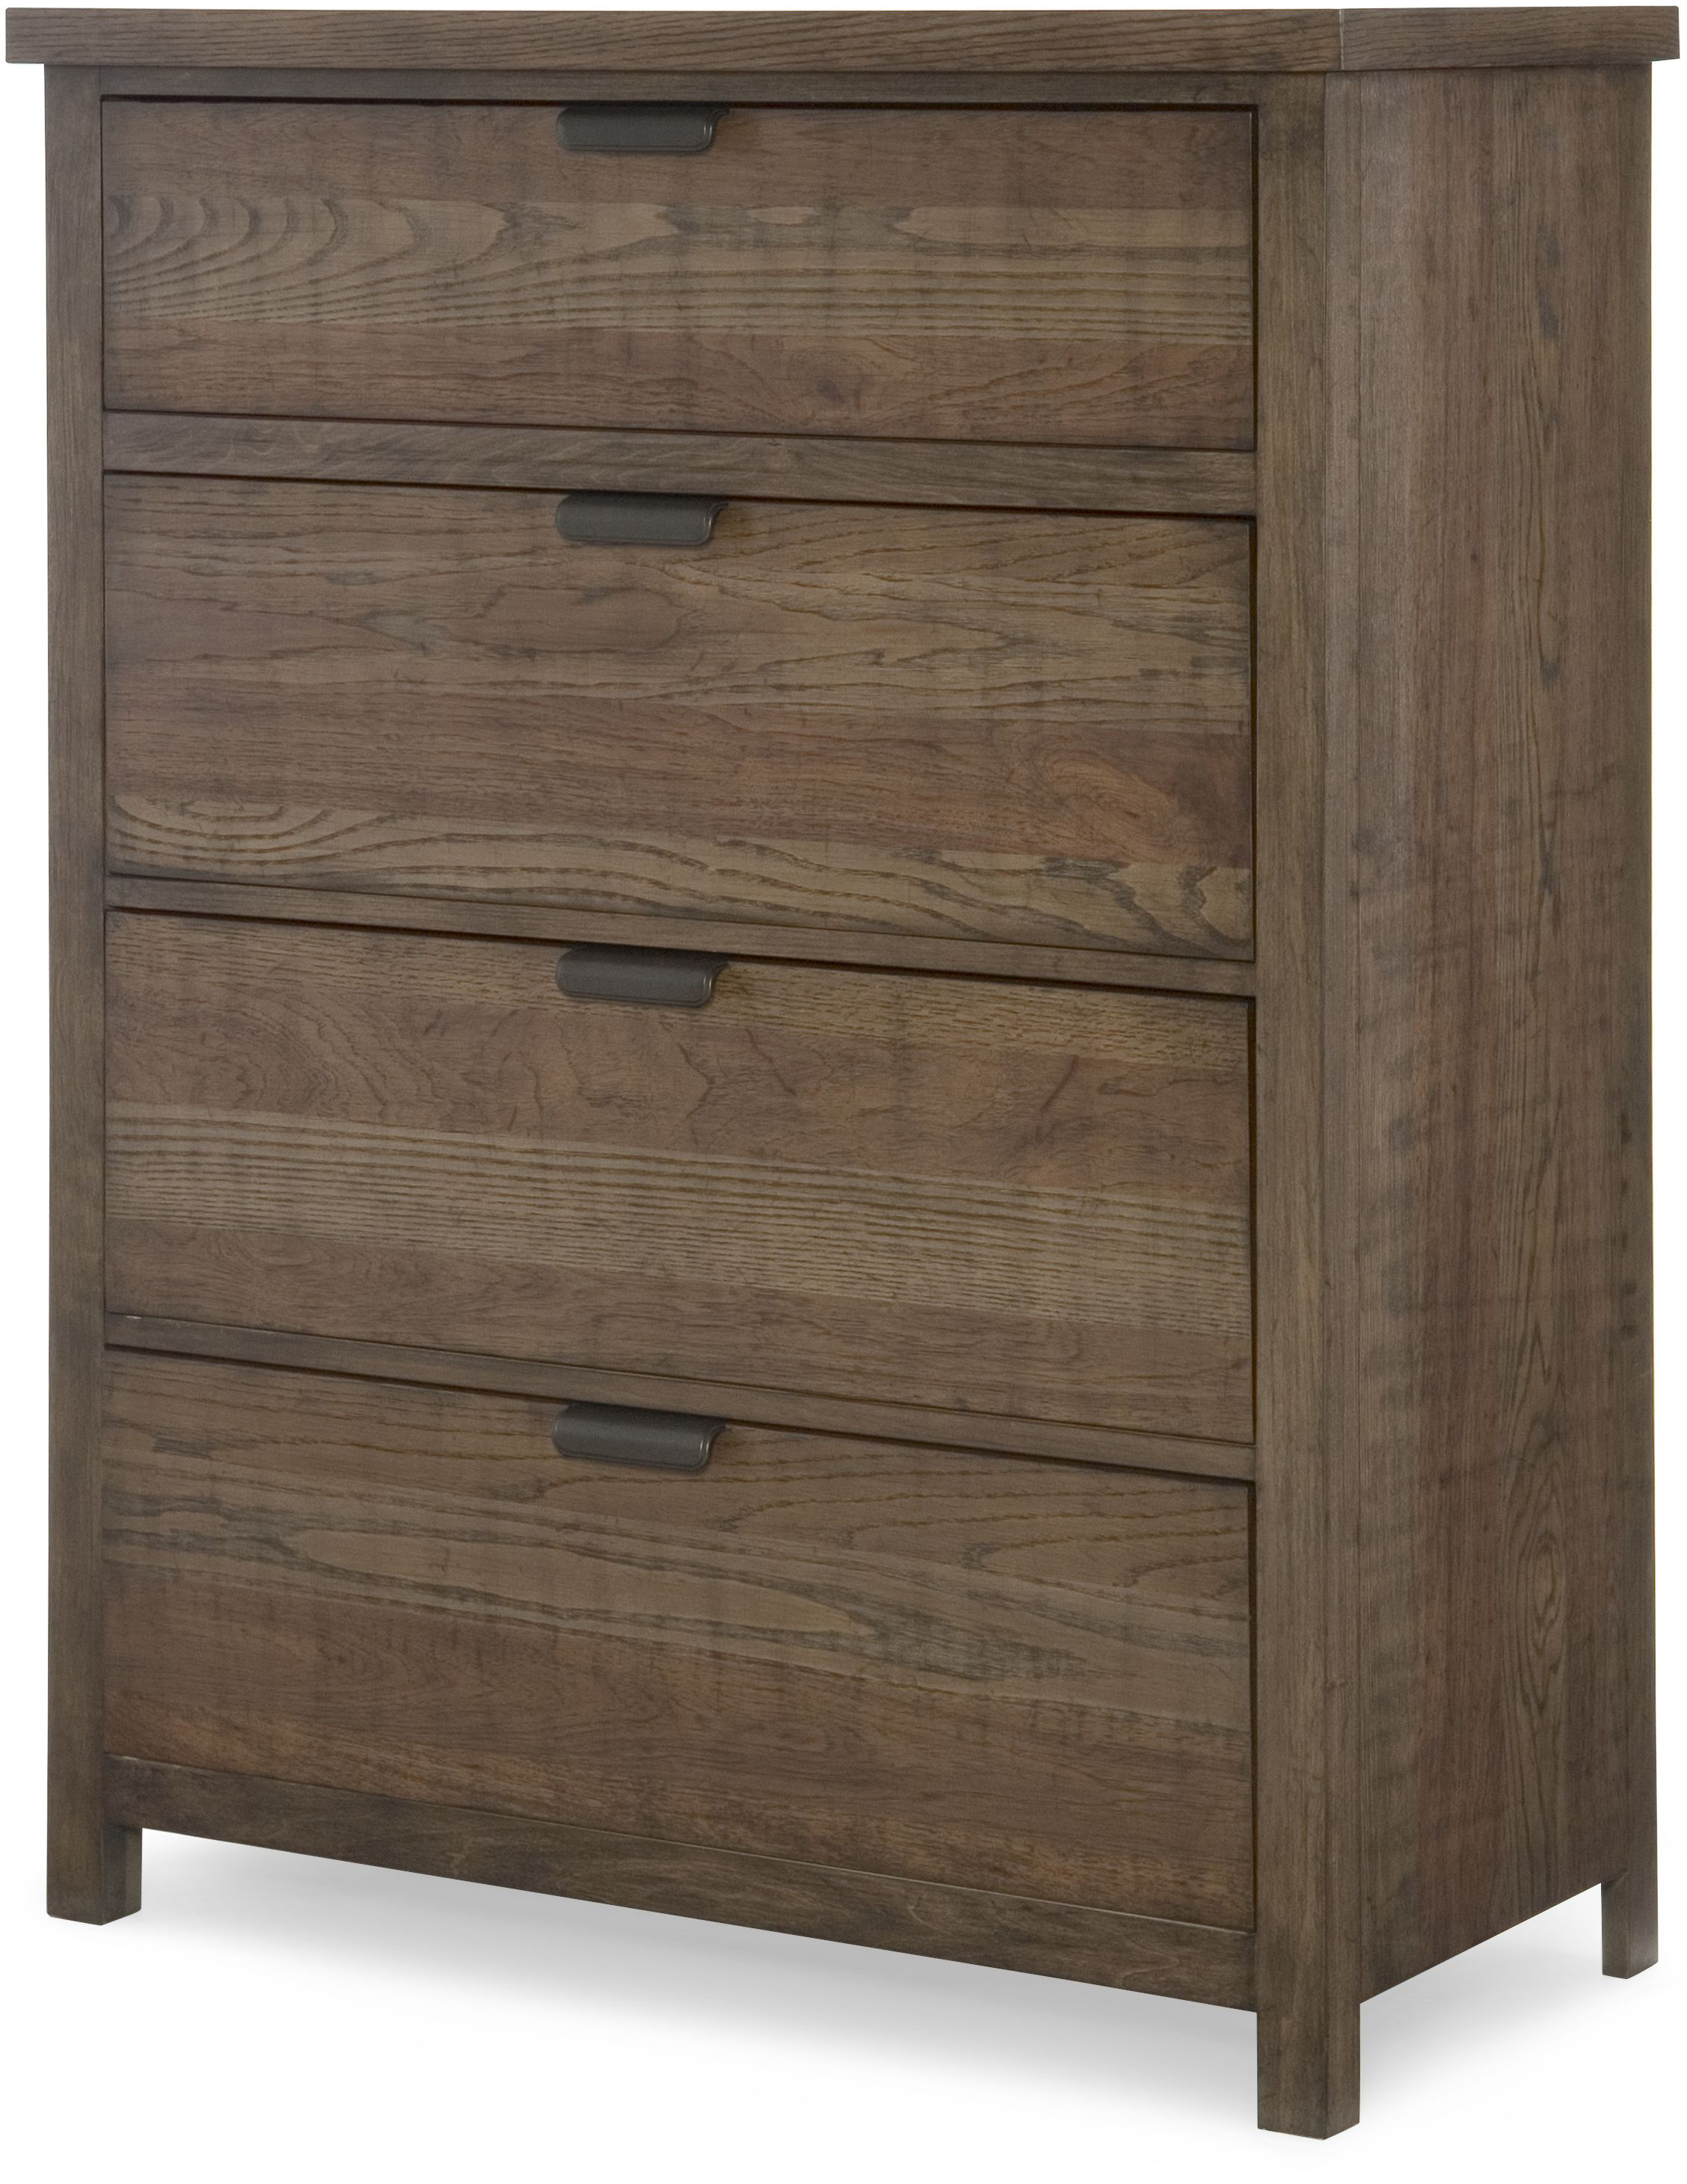 Drawer Chest with 4 Drawers